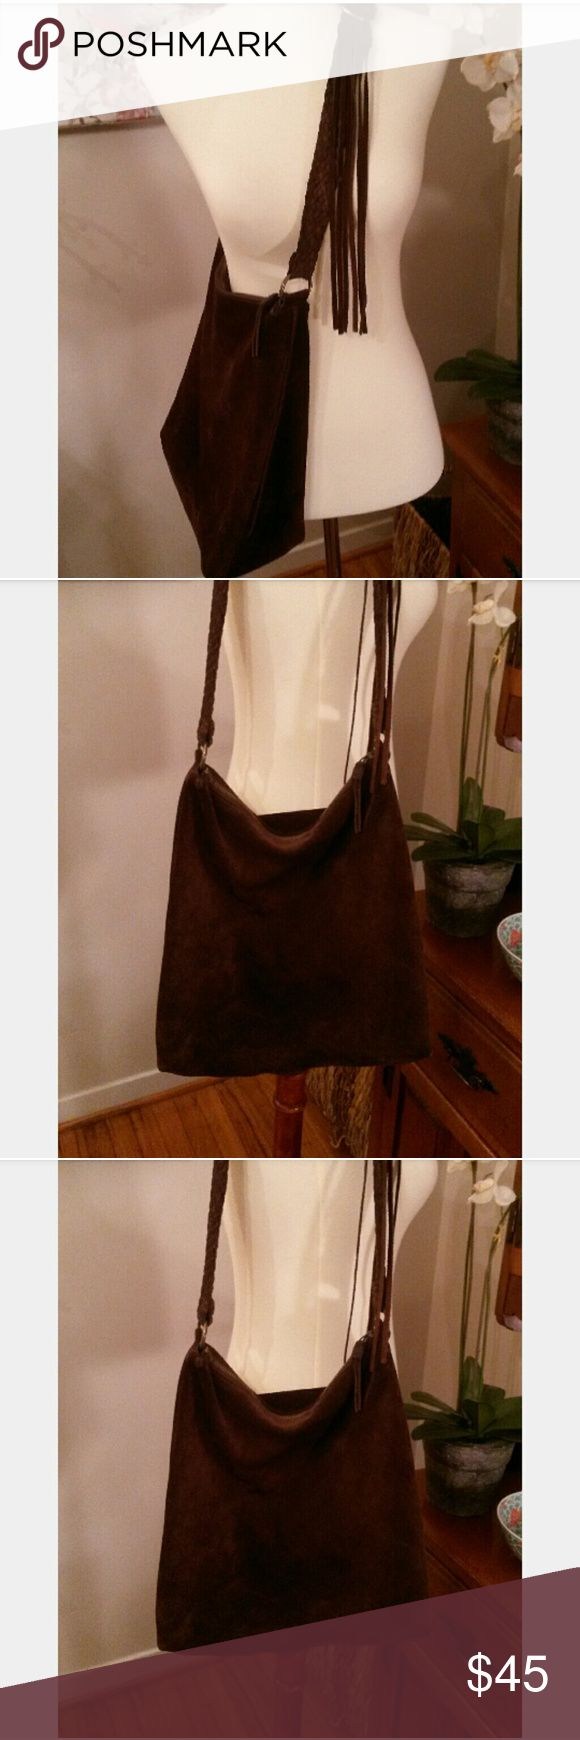 Gap Brown Suede Fringed Bag Gap boho style brown suede bag.  *adjustable braided suede strap.  *inner side zip pocket *brass hardware *zipper has one fringe strand missing,  but not noticeable when wearing. *may be worn crossbody  * Suede has normal minor signs of wear. *very good used condition  Smoke free home. Posh ambassador. Gap Bags